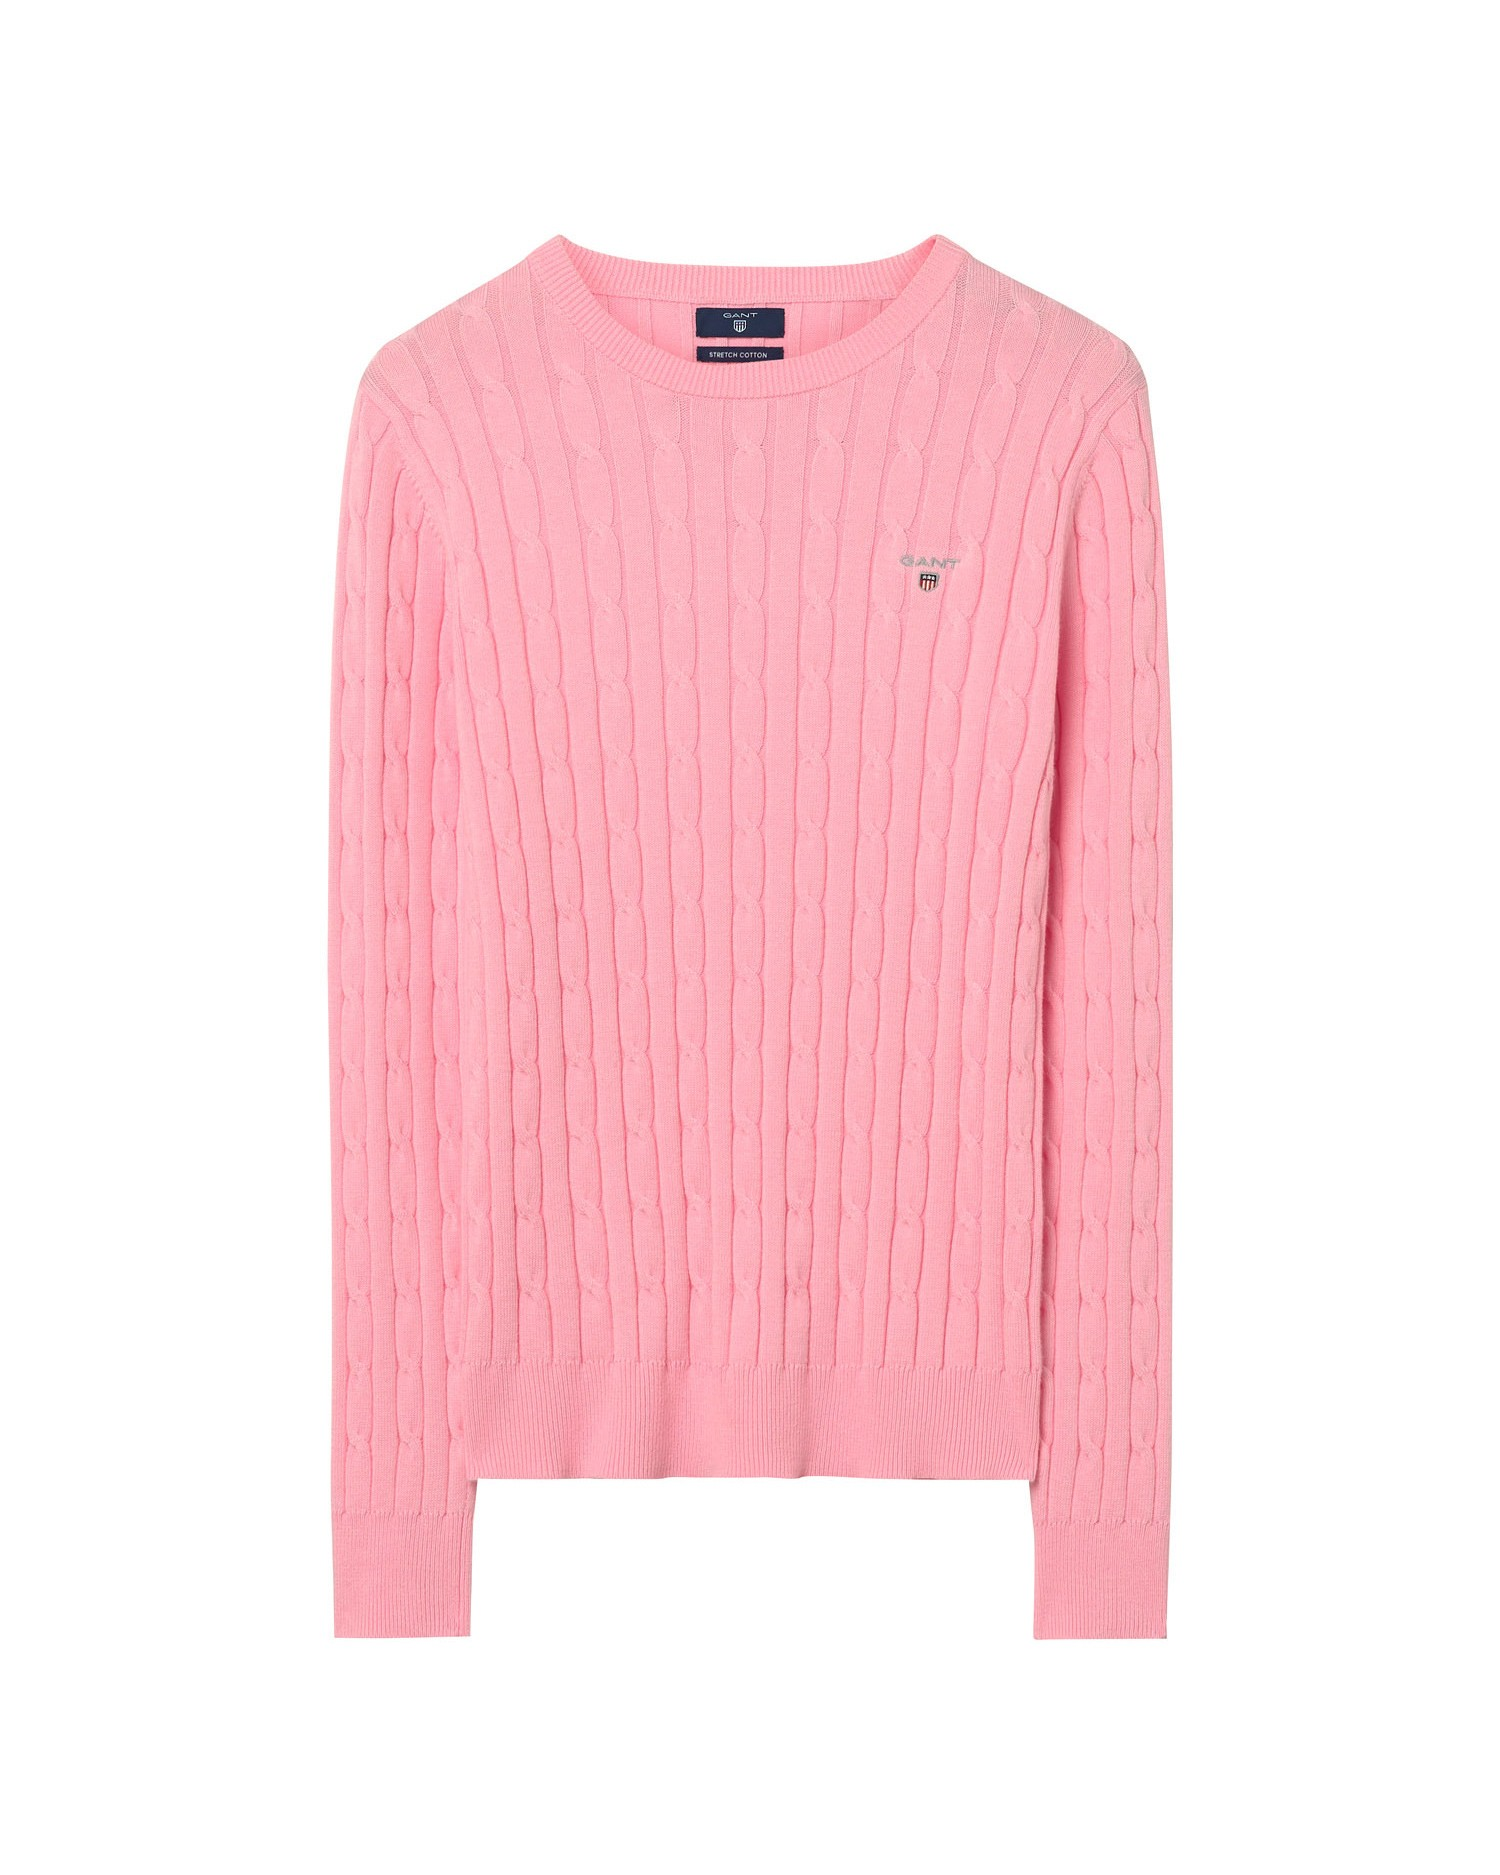 GANT Women's Stretch Cotton Cable Crew Sweater - 480021